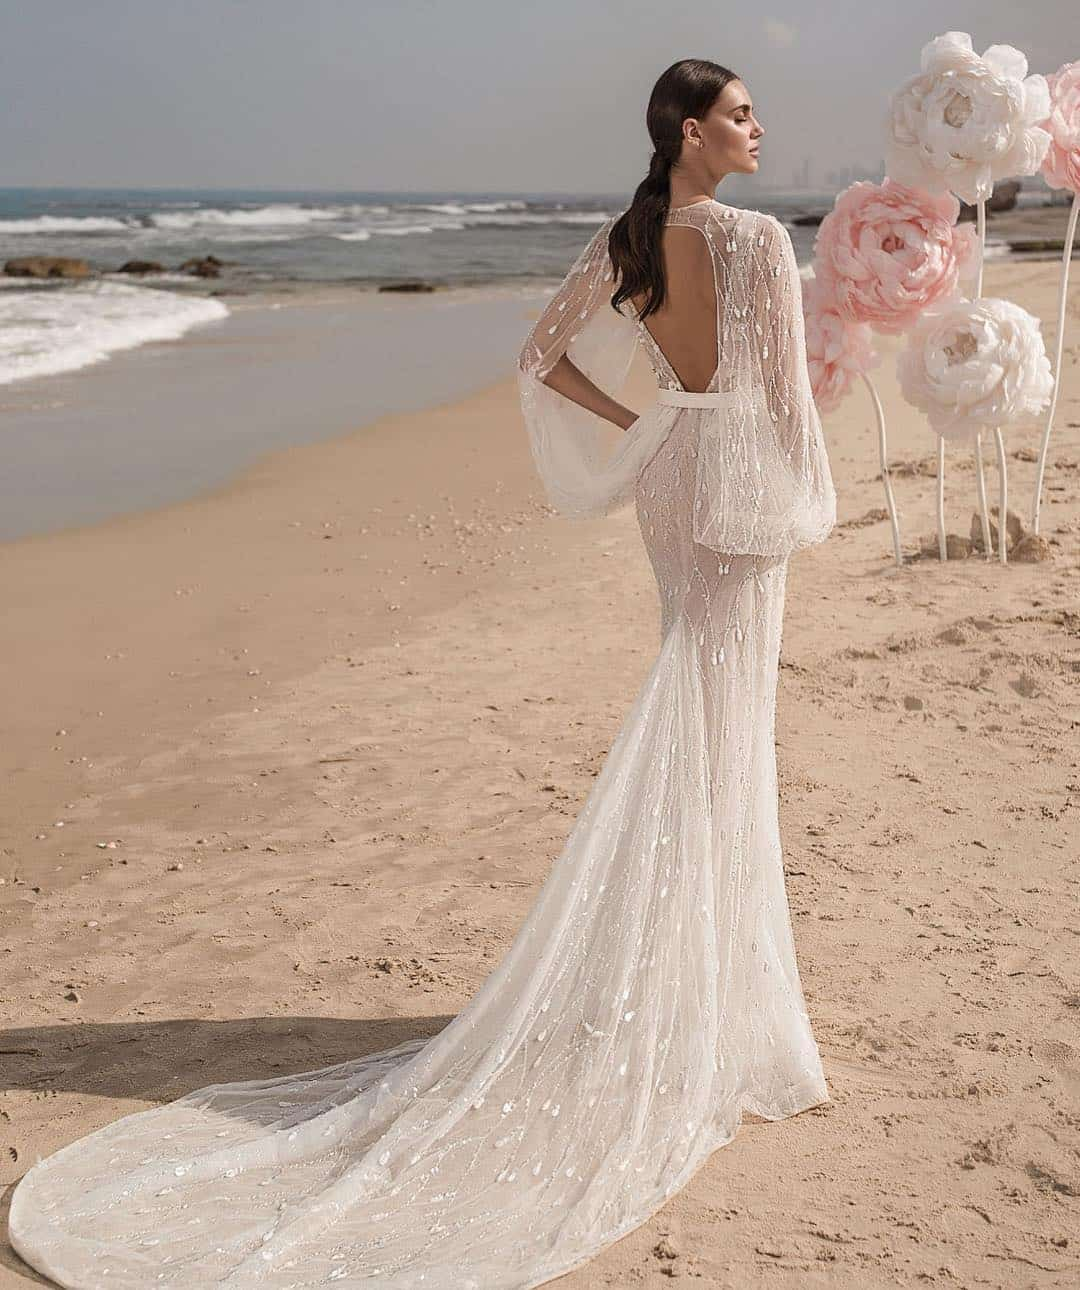 Exquisite Bridal Collection by Lee Petra Grebenau